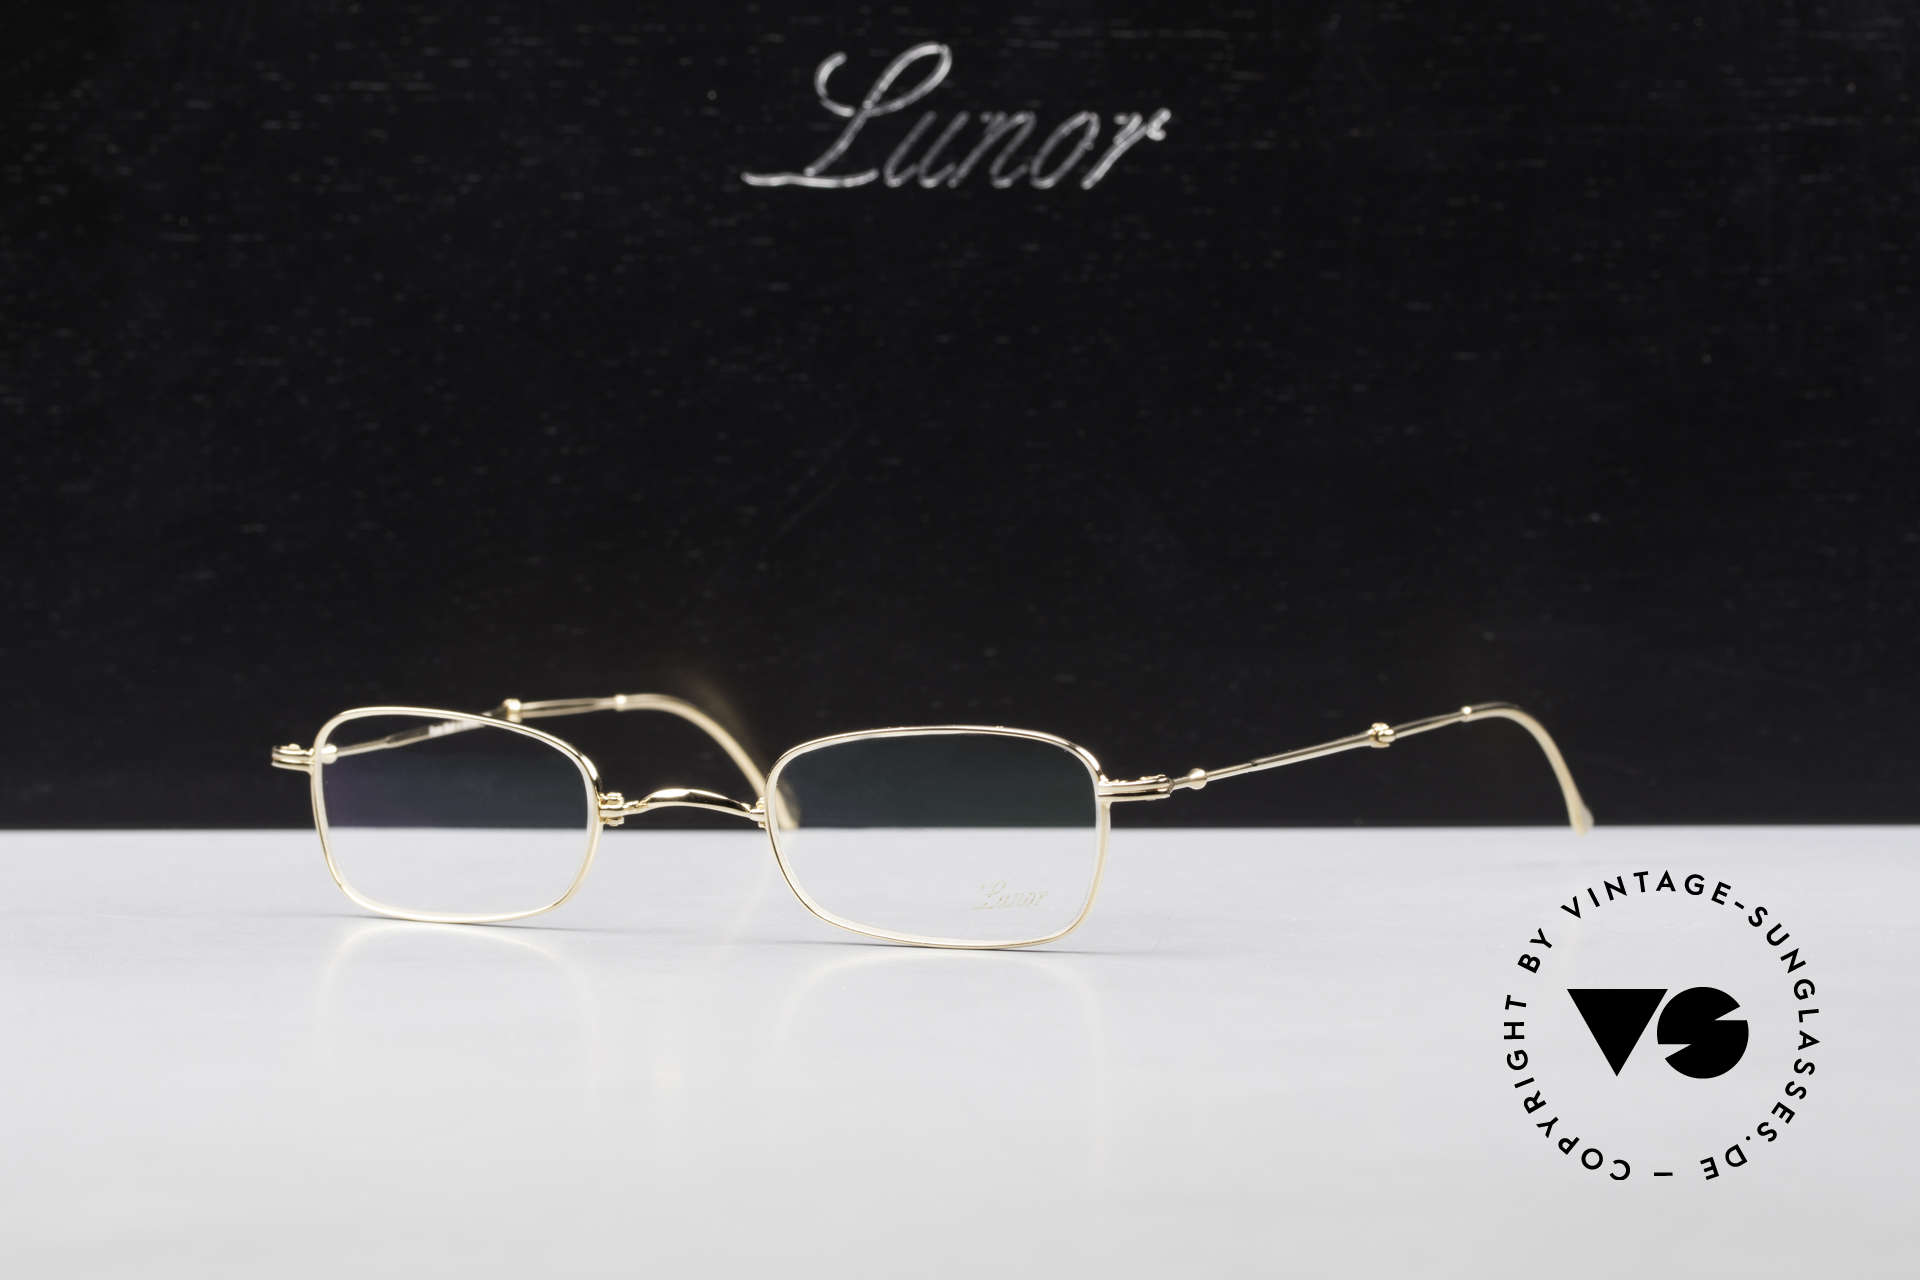 Lunor XXV Folding 02 Foldable Frame Gold Plated, Size: small, Made for Men and Women